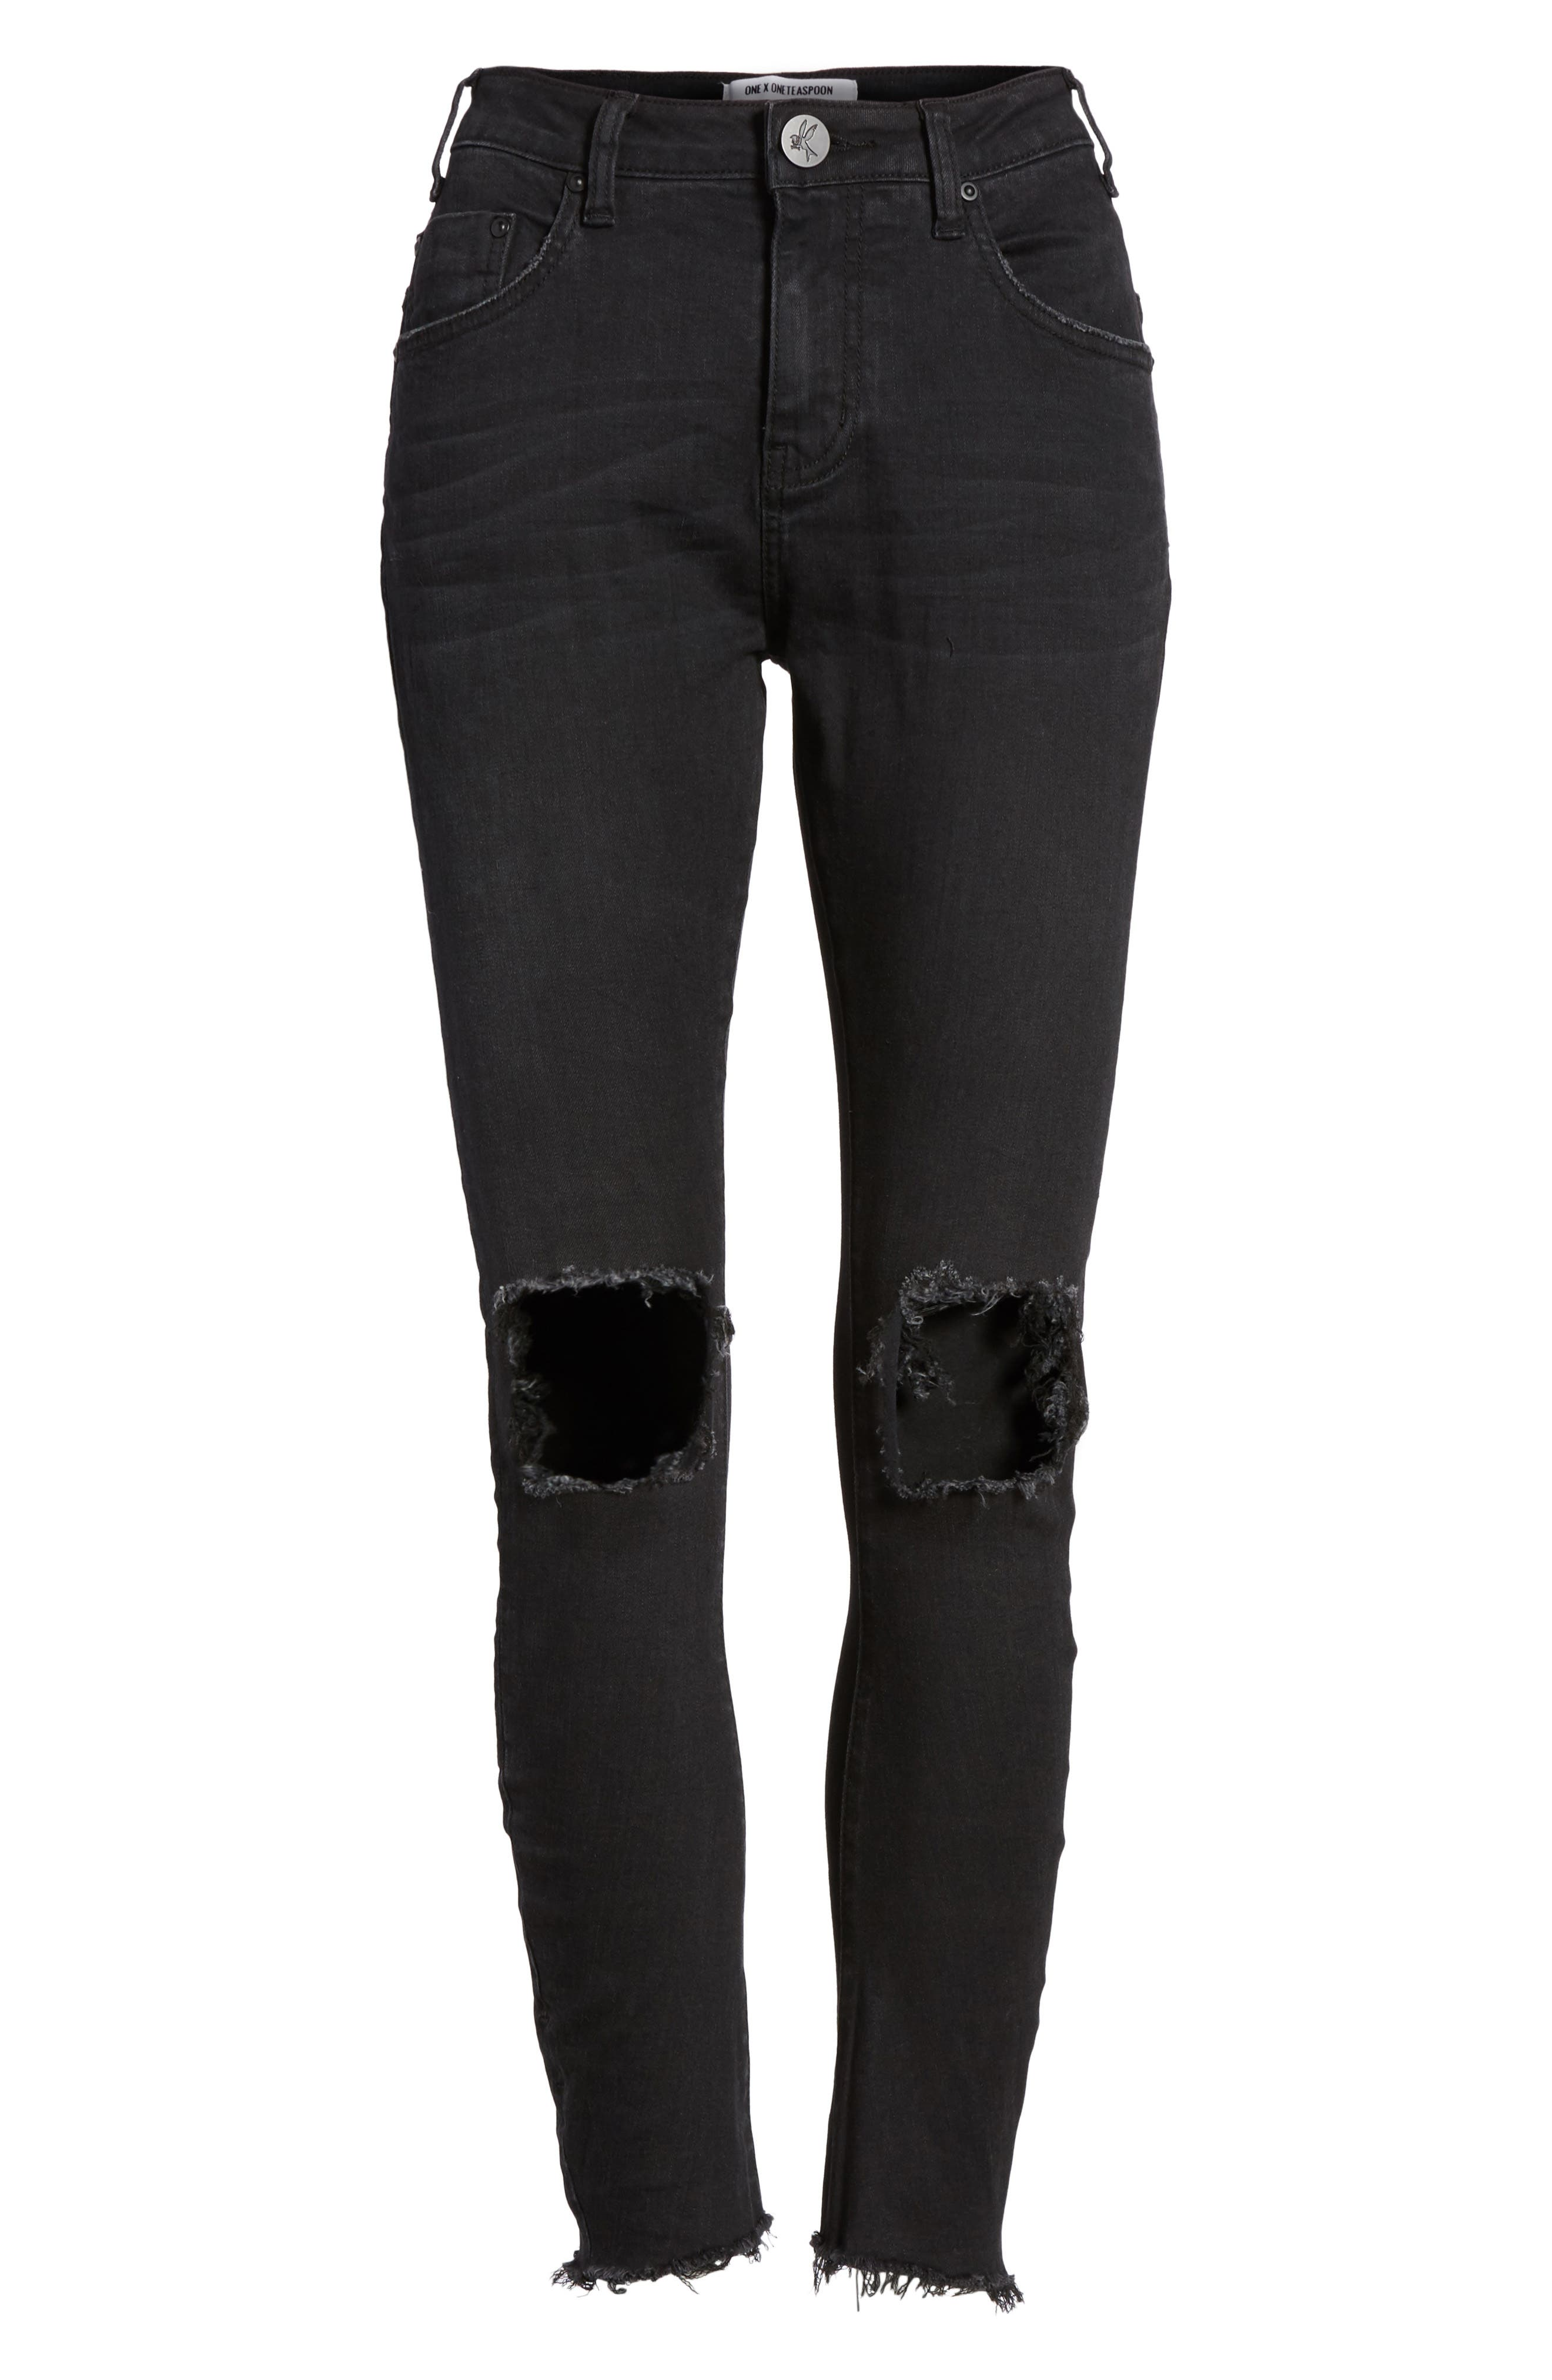 Freebirds Ripped High Waist Skinny Jeans,                             Alternate thumbnail 6, color,                             001